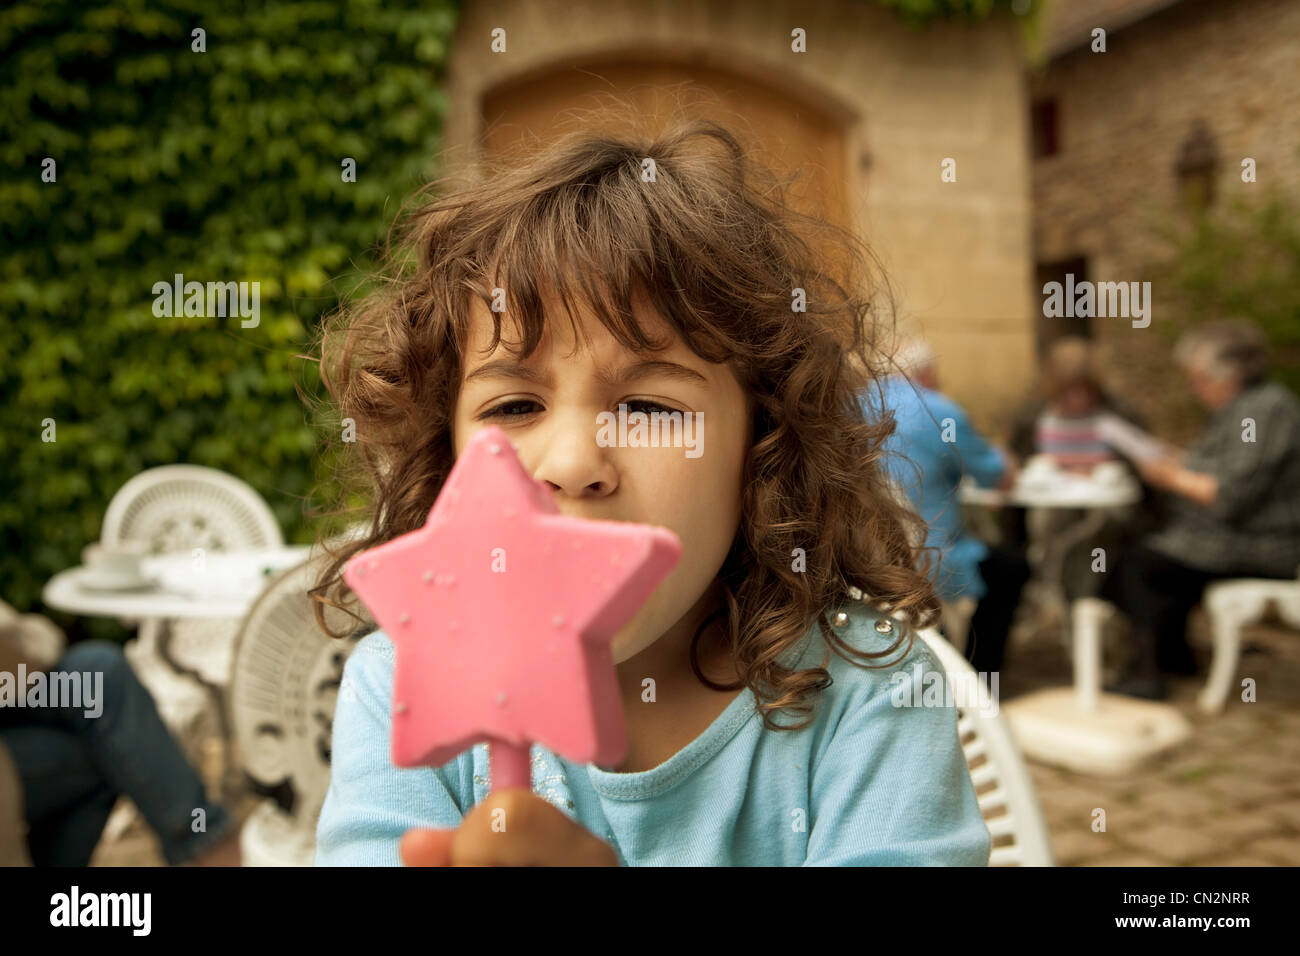 Girl eating star shaped ice cream Stock Photo